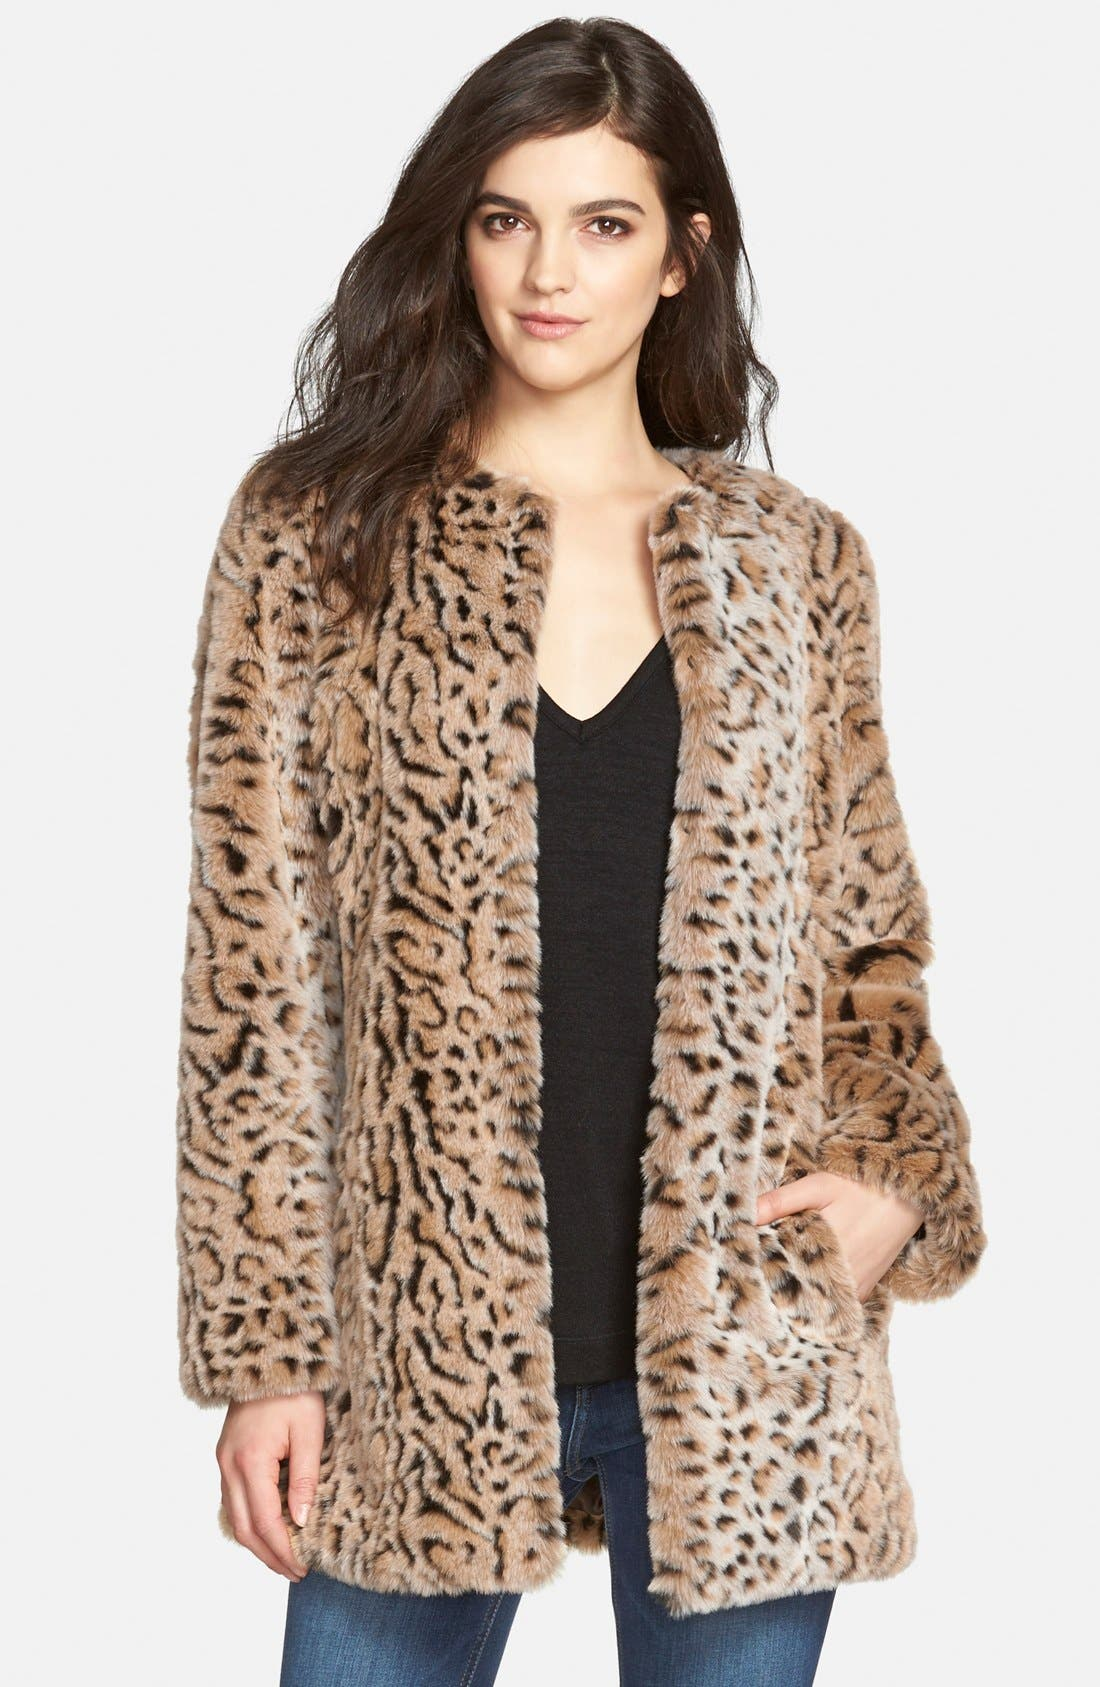 Jun 10,  · Have we got the jacket for you! This faux fur leopard print jacket is a classic 90s staple, whether you're dressing up or .